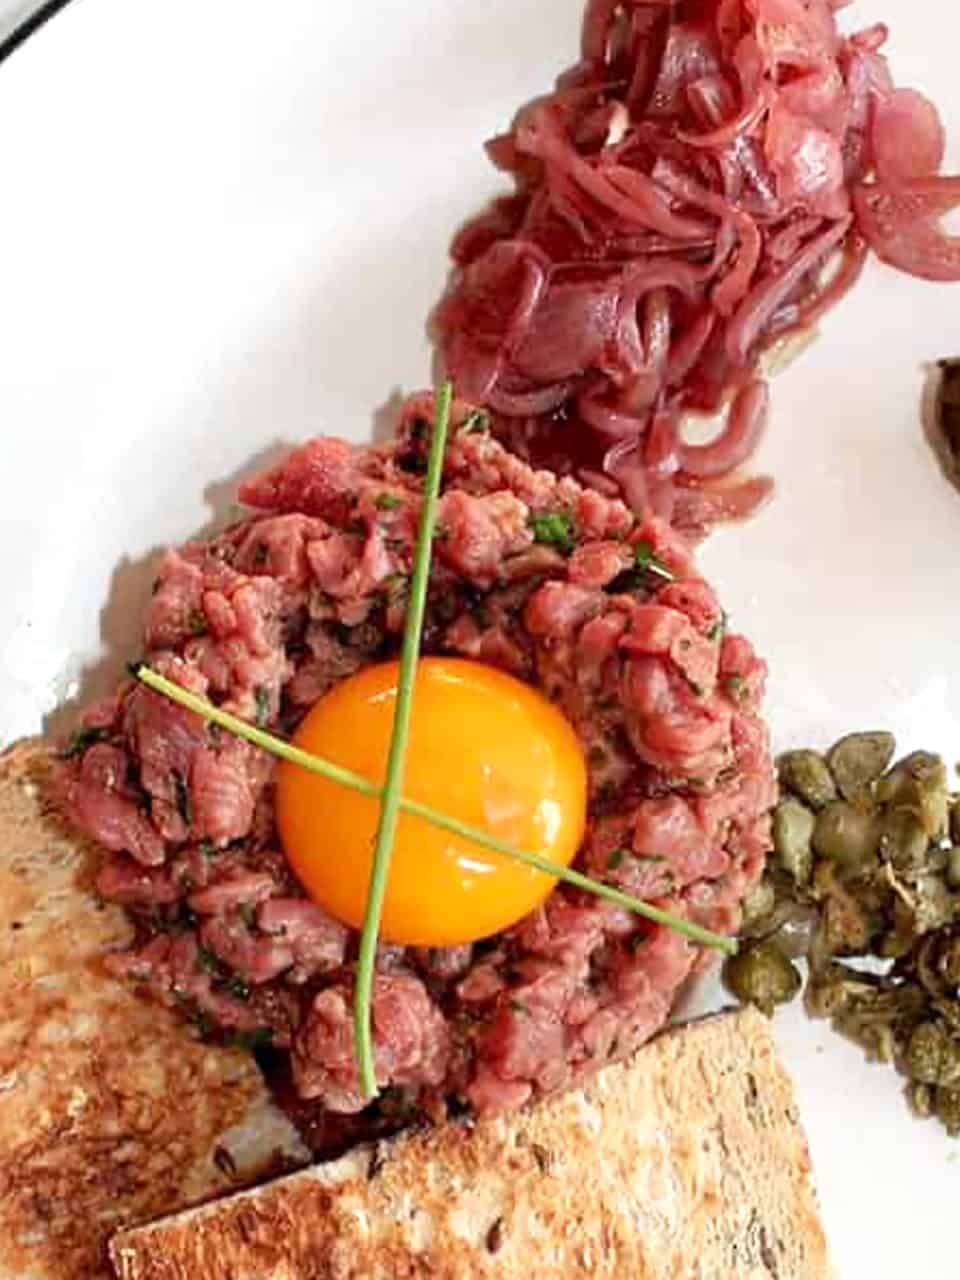 Overhead shot of an egg yolk placed on top of the steak tartare and garnished with chives